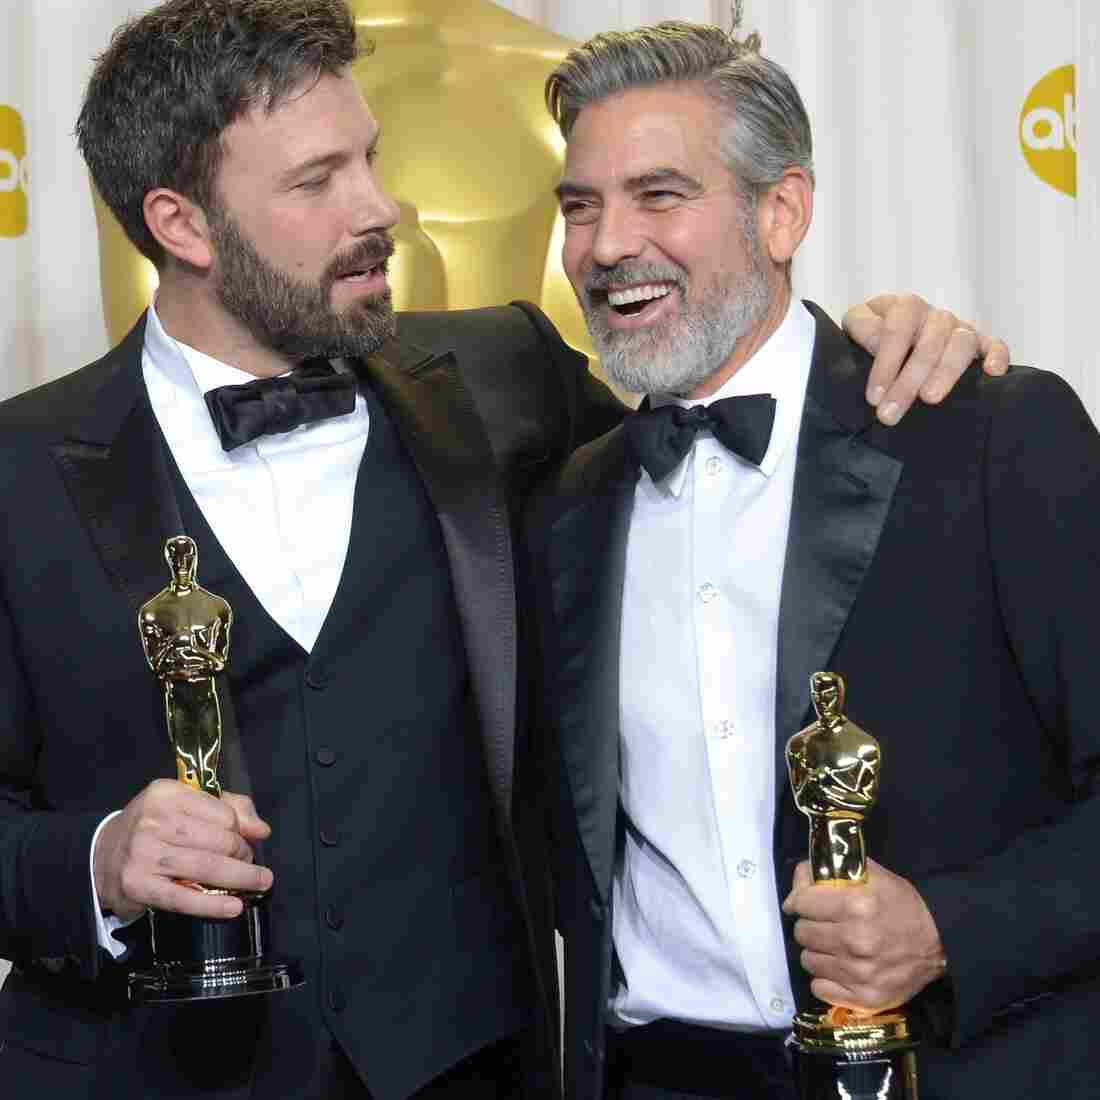 Ben Affleck (center), George Clooney (right) and Grant Heslov celebrate in the press room after winning the Oscar for best picture for Argo.